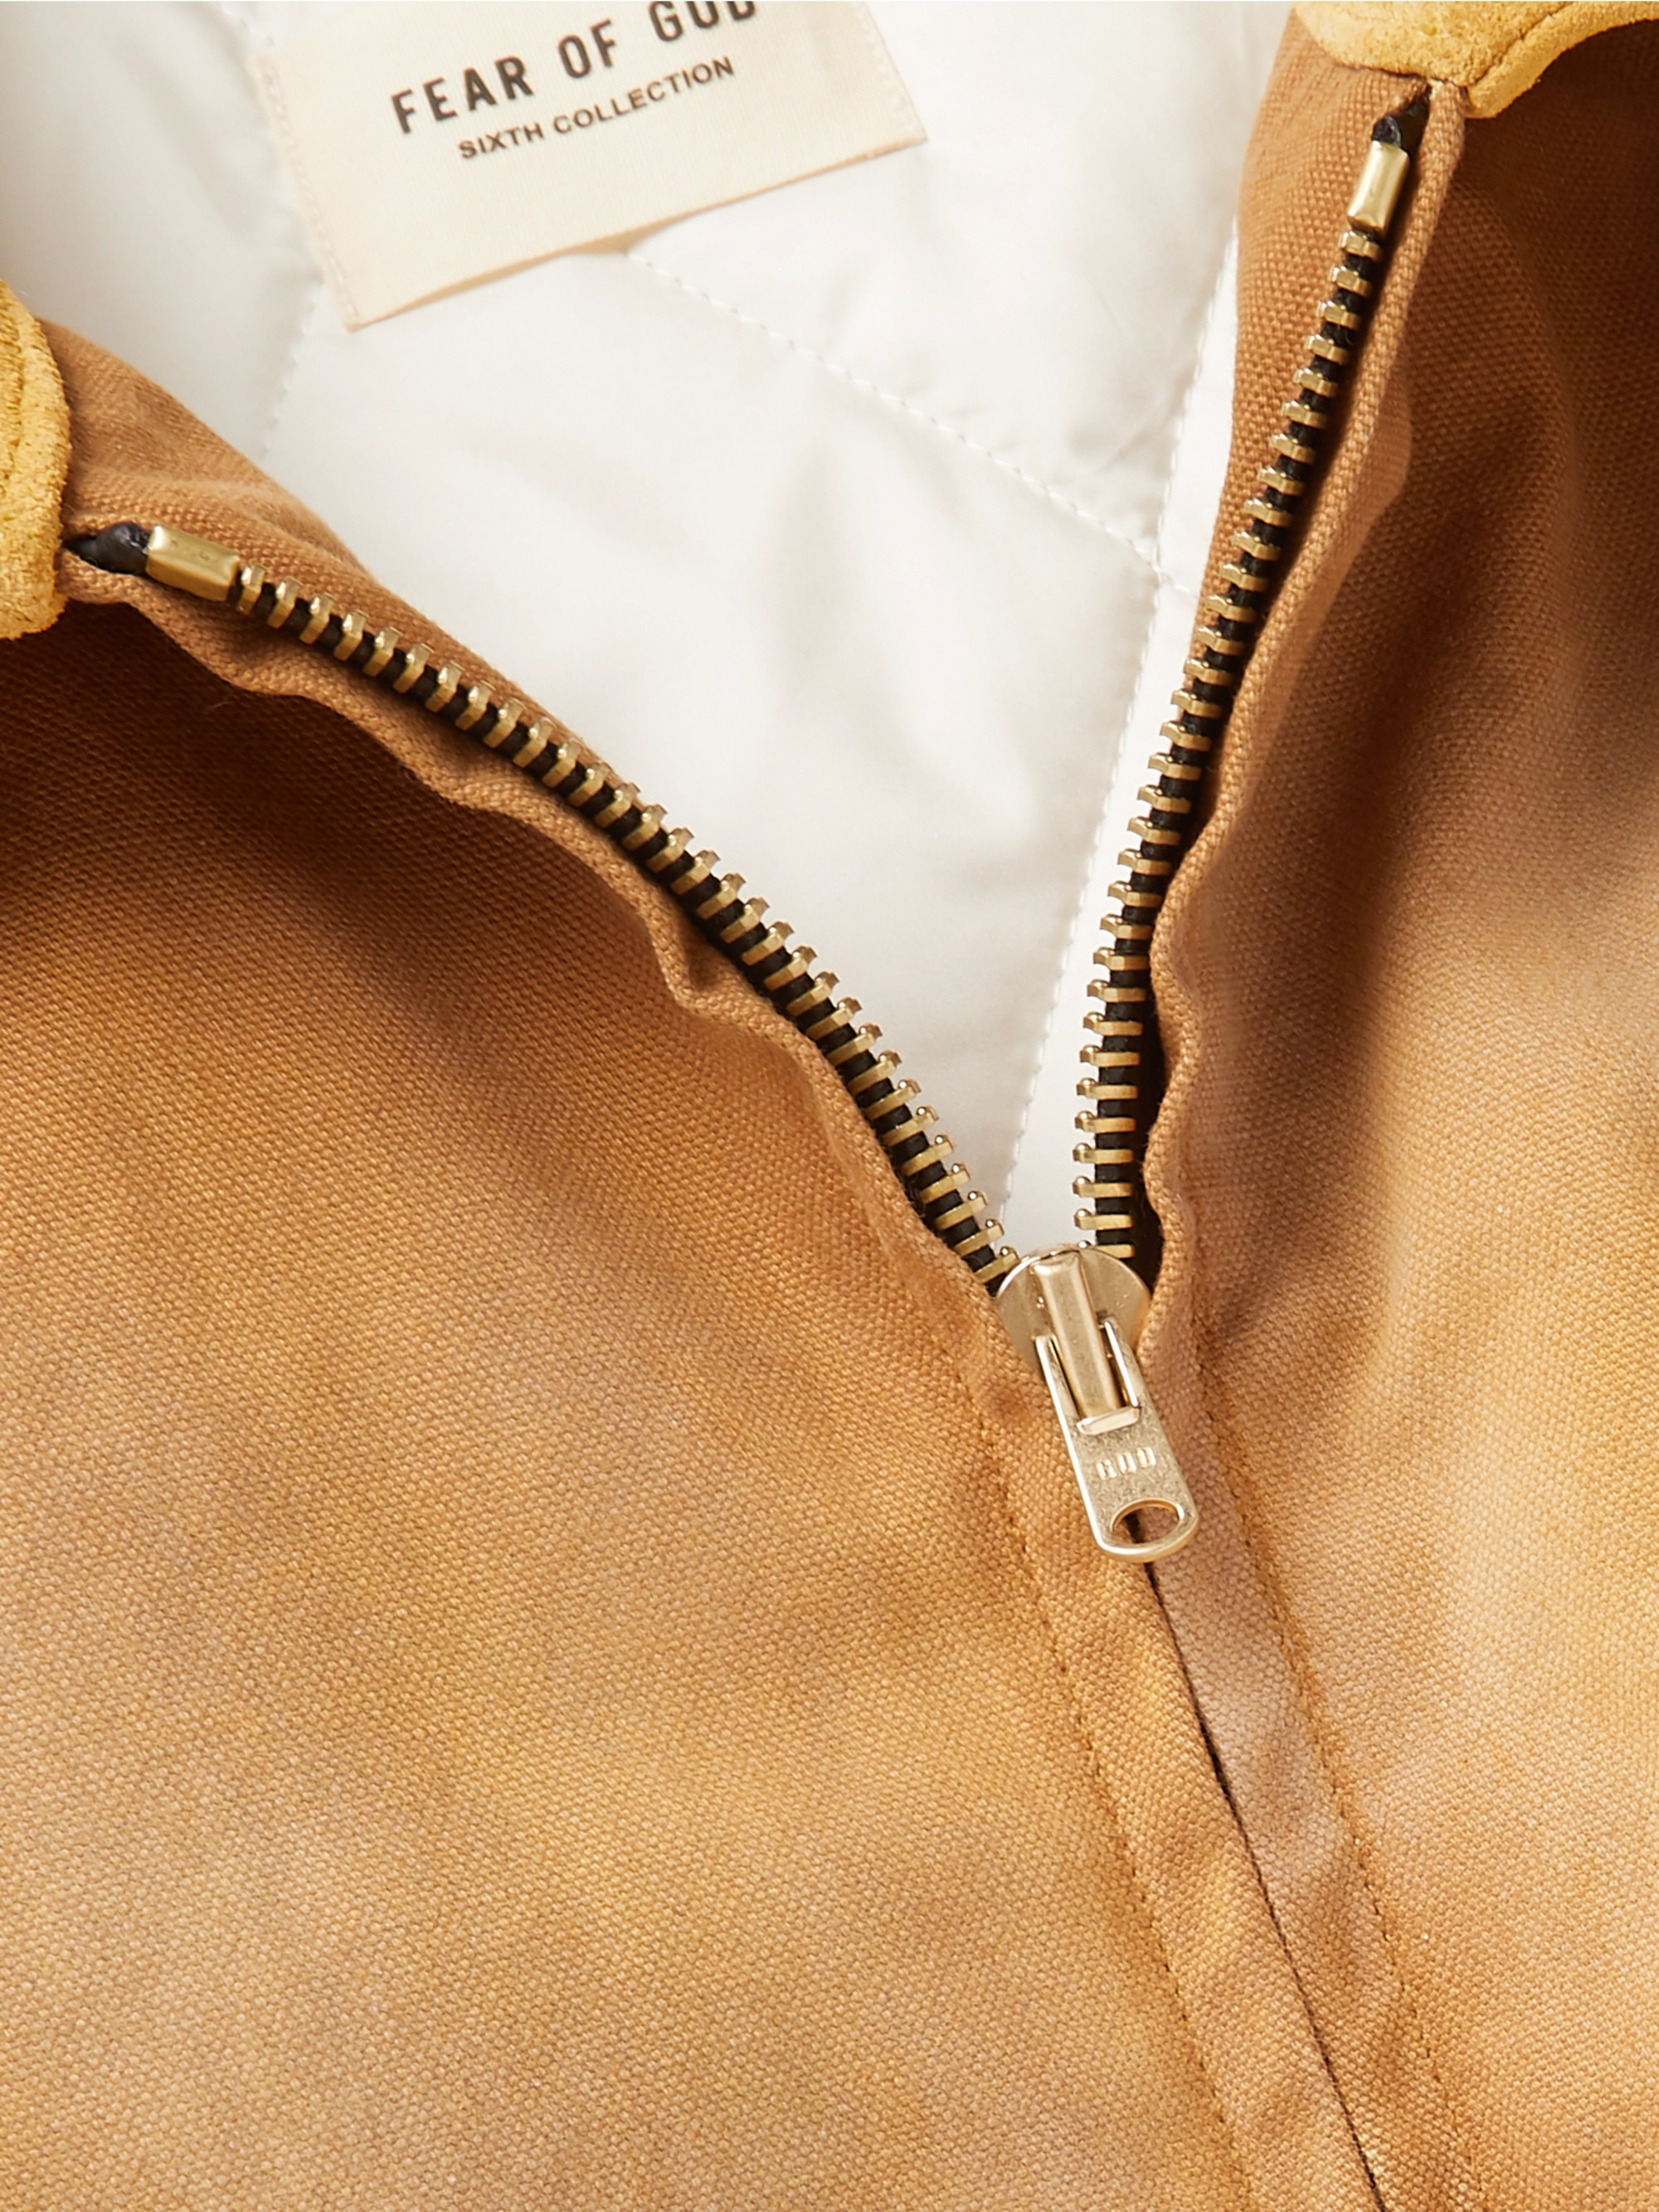 Fear of God Suede-Trimmed Cotton-Canvas Blouson Jacket